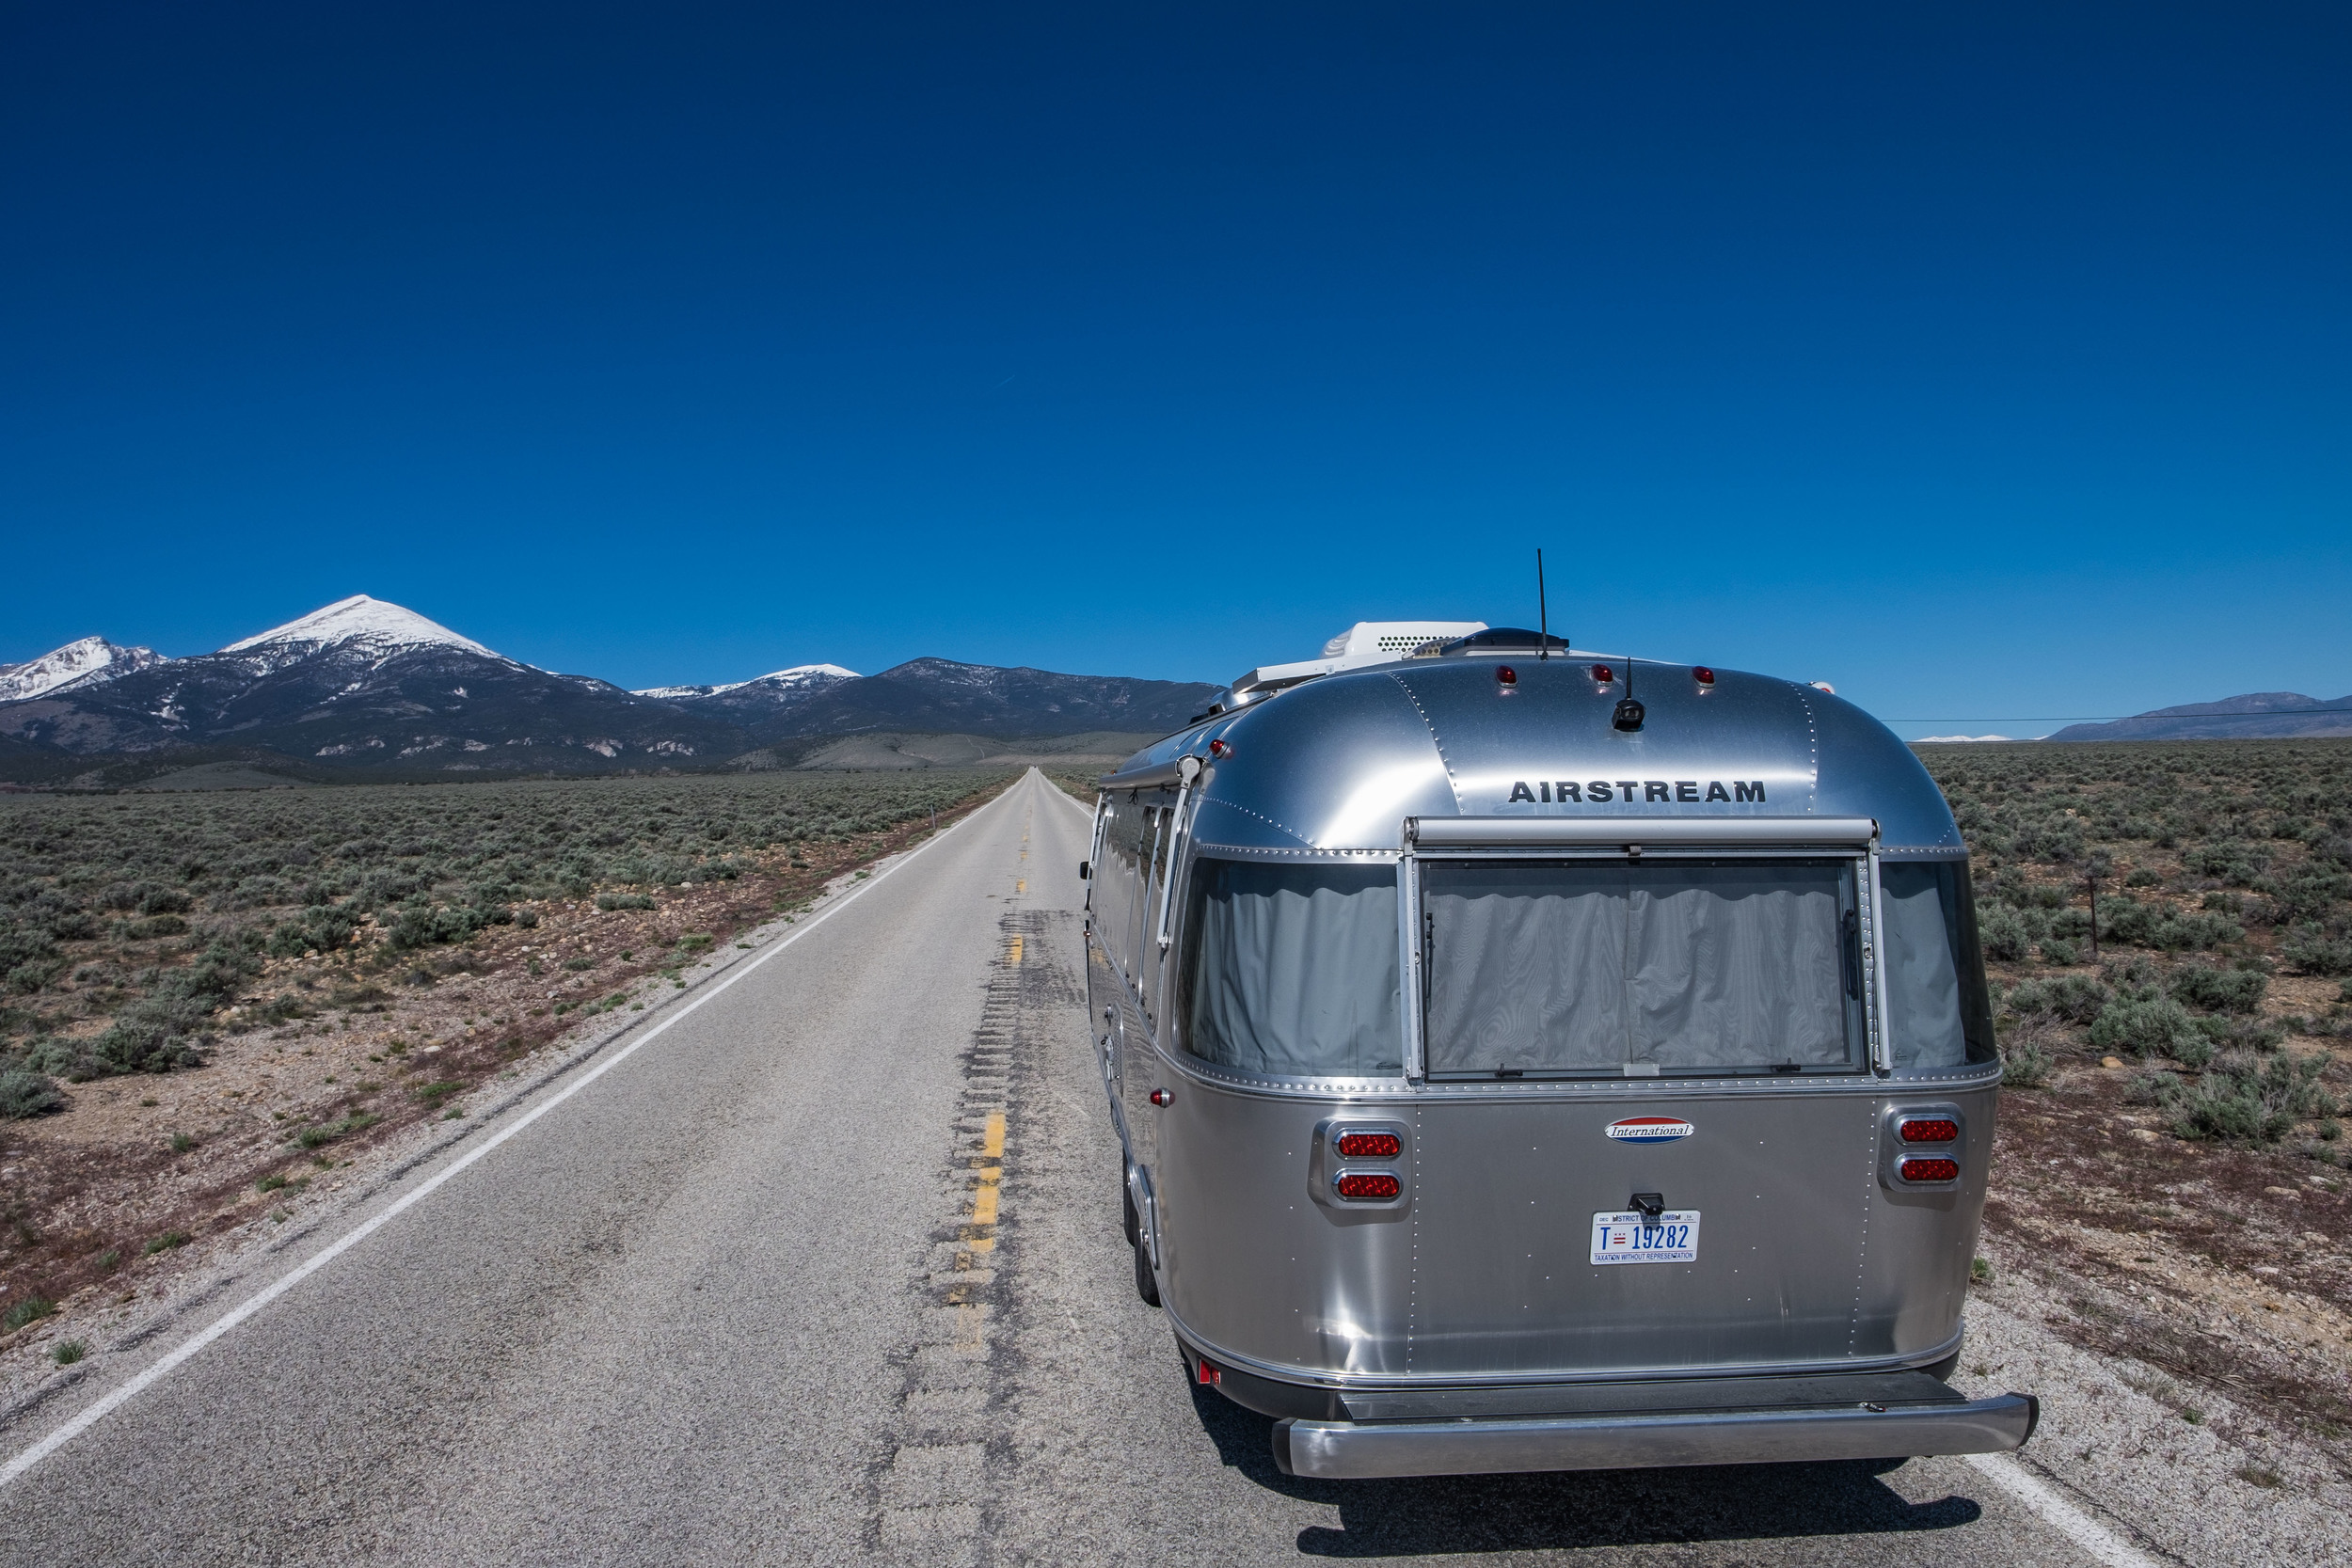 On the road in Great Basin National Park in eastern Nevada.